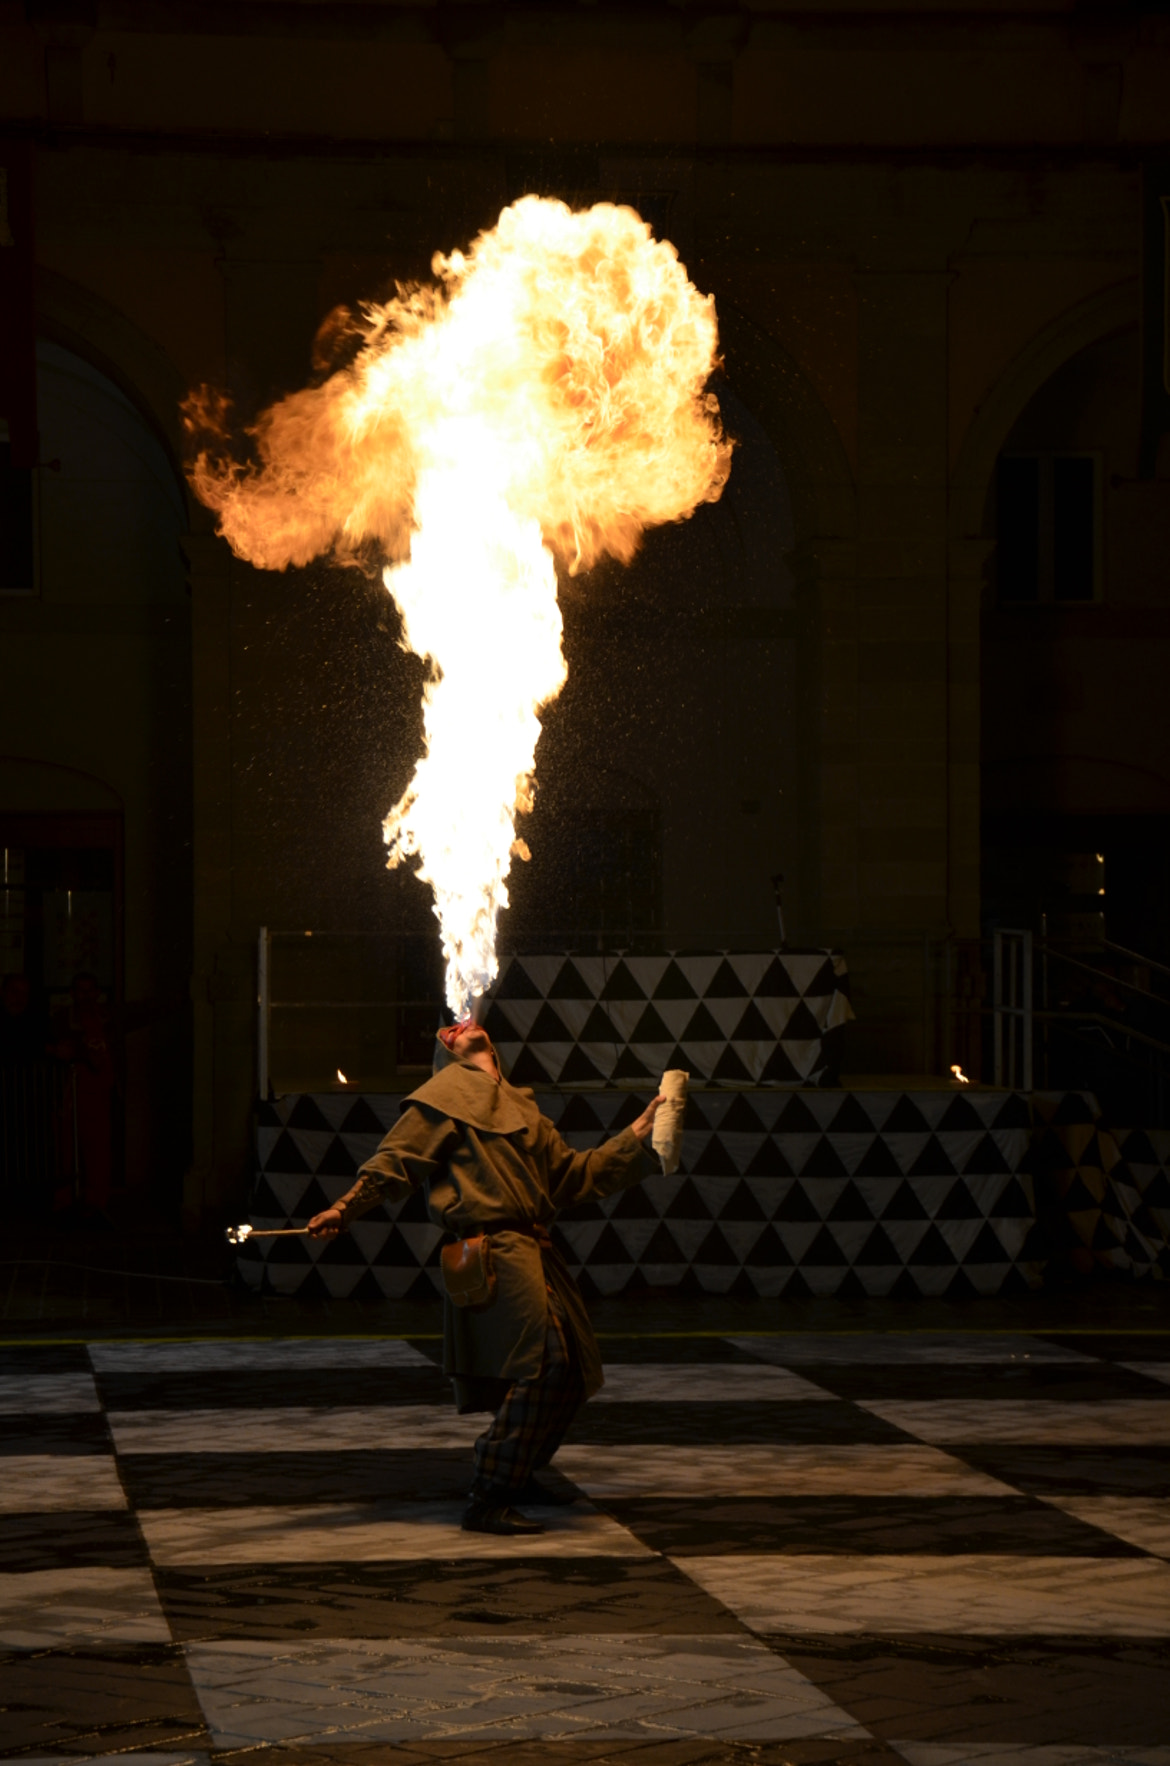 Photograph Spits fire by Vanderlei Bailo on 500px